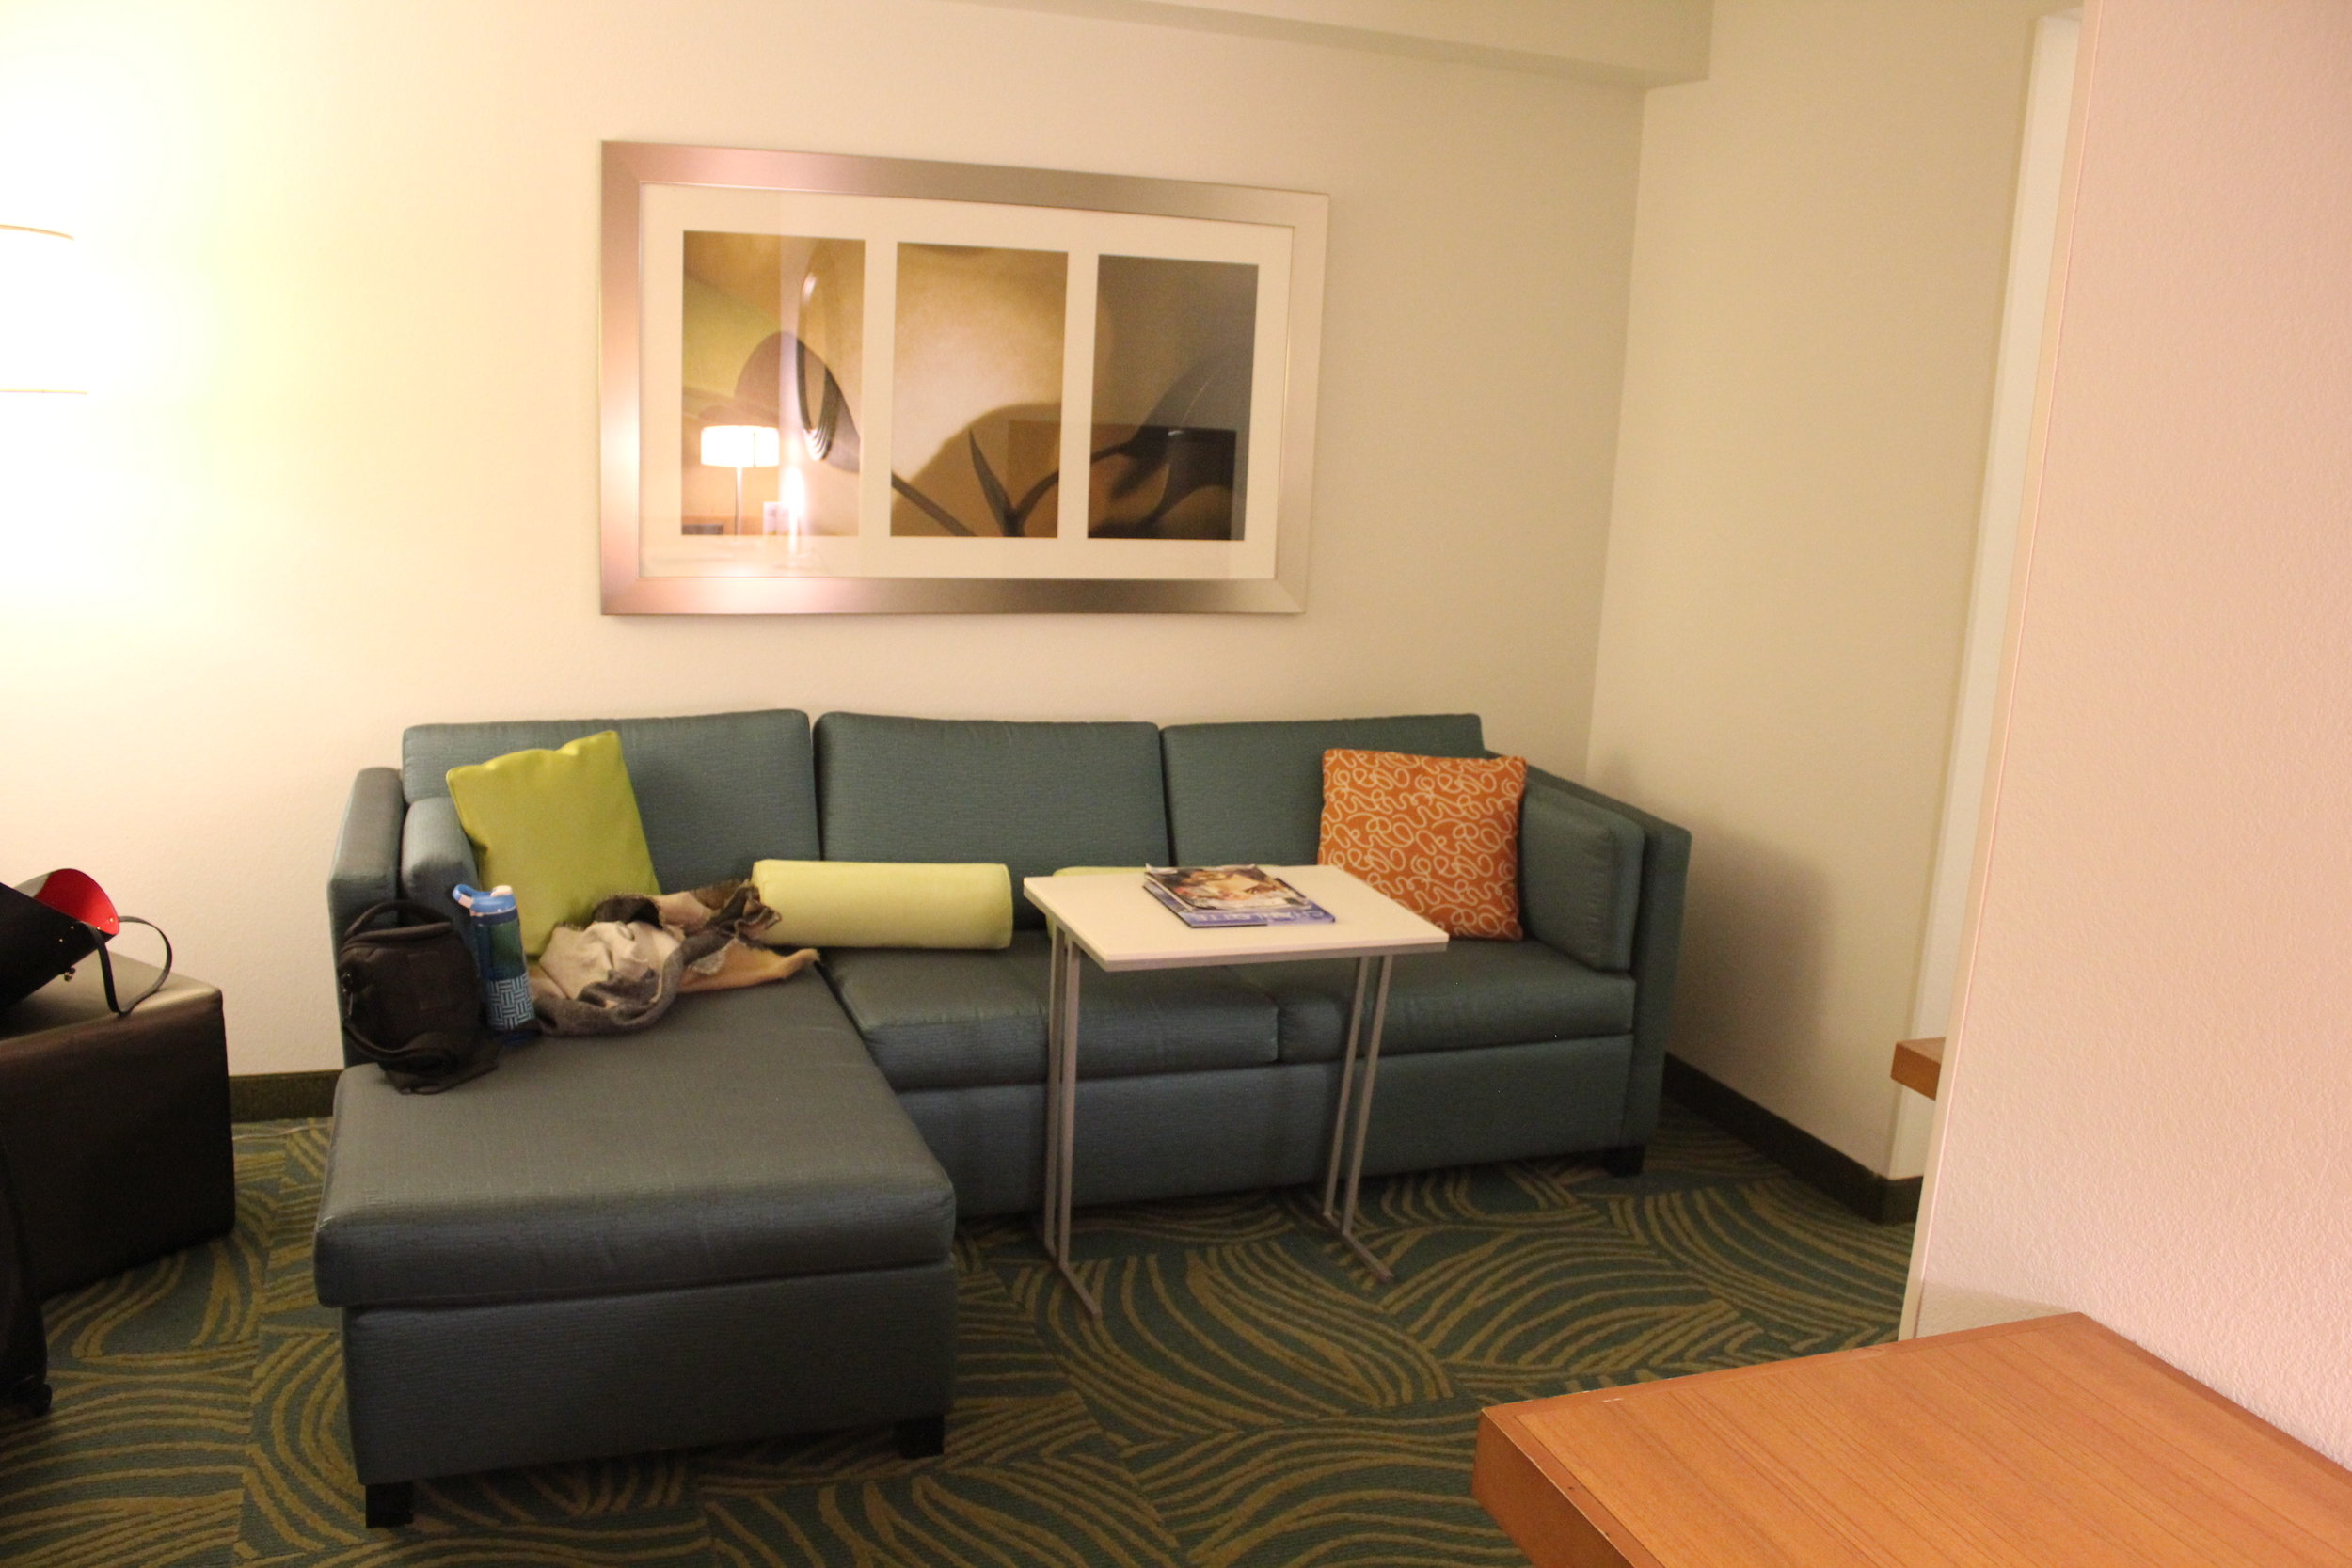 SpringHill Suites Charlotte Airport – Lounging area